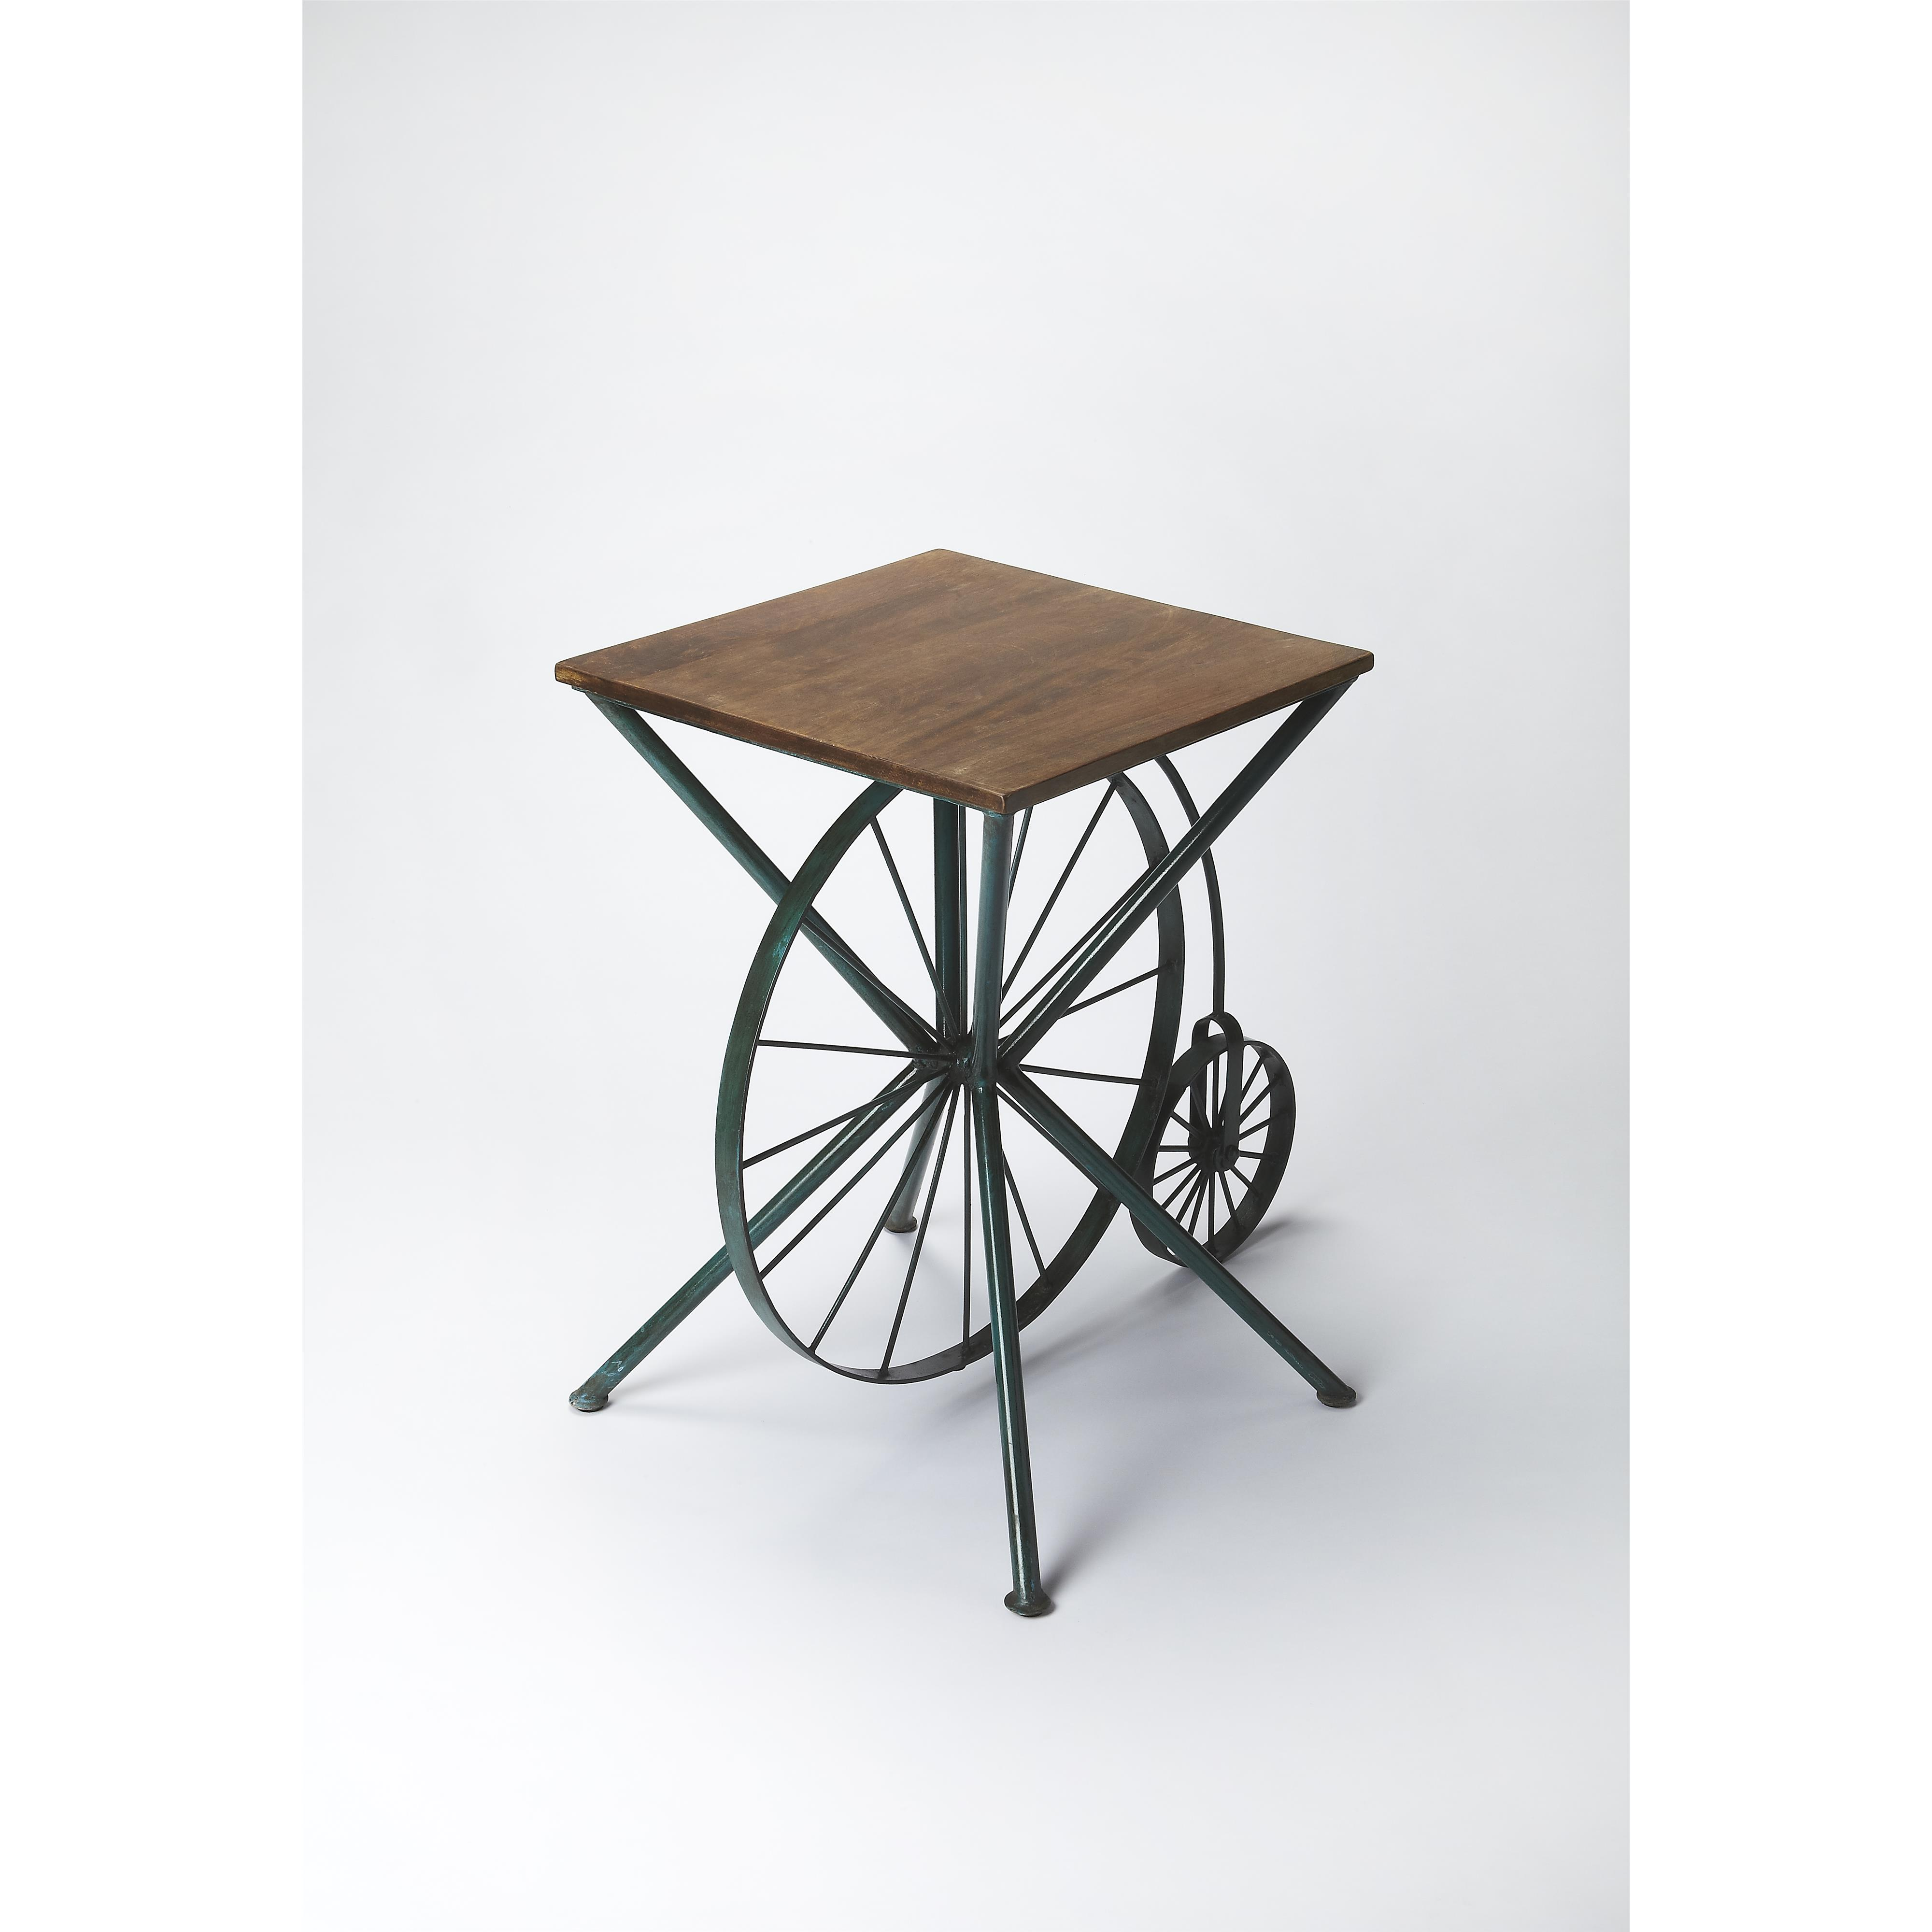 Butler Specialty Company Industrial Chic Accent Table - Item Number: 3540330